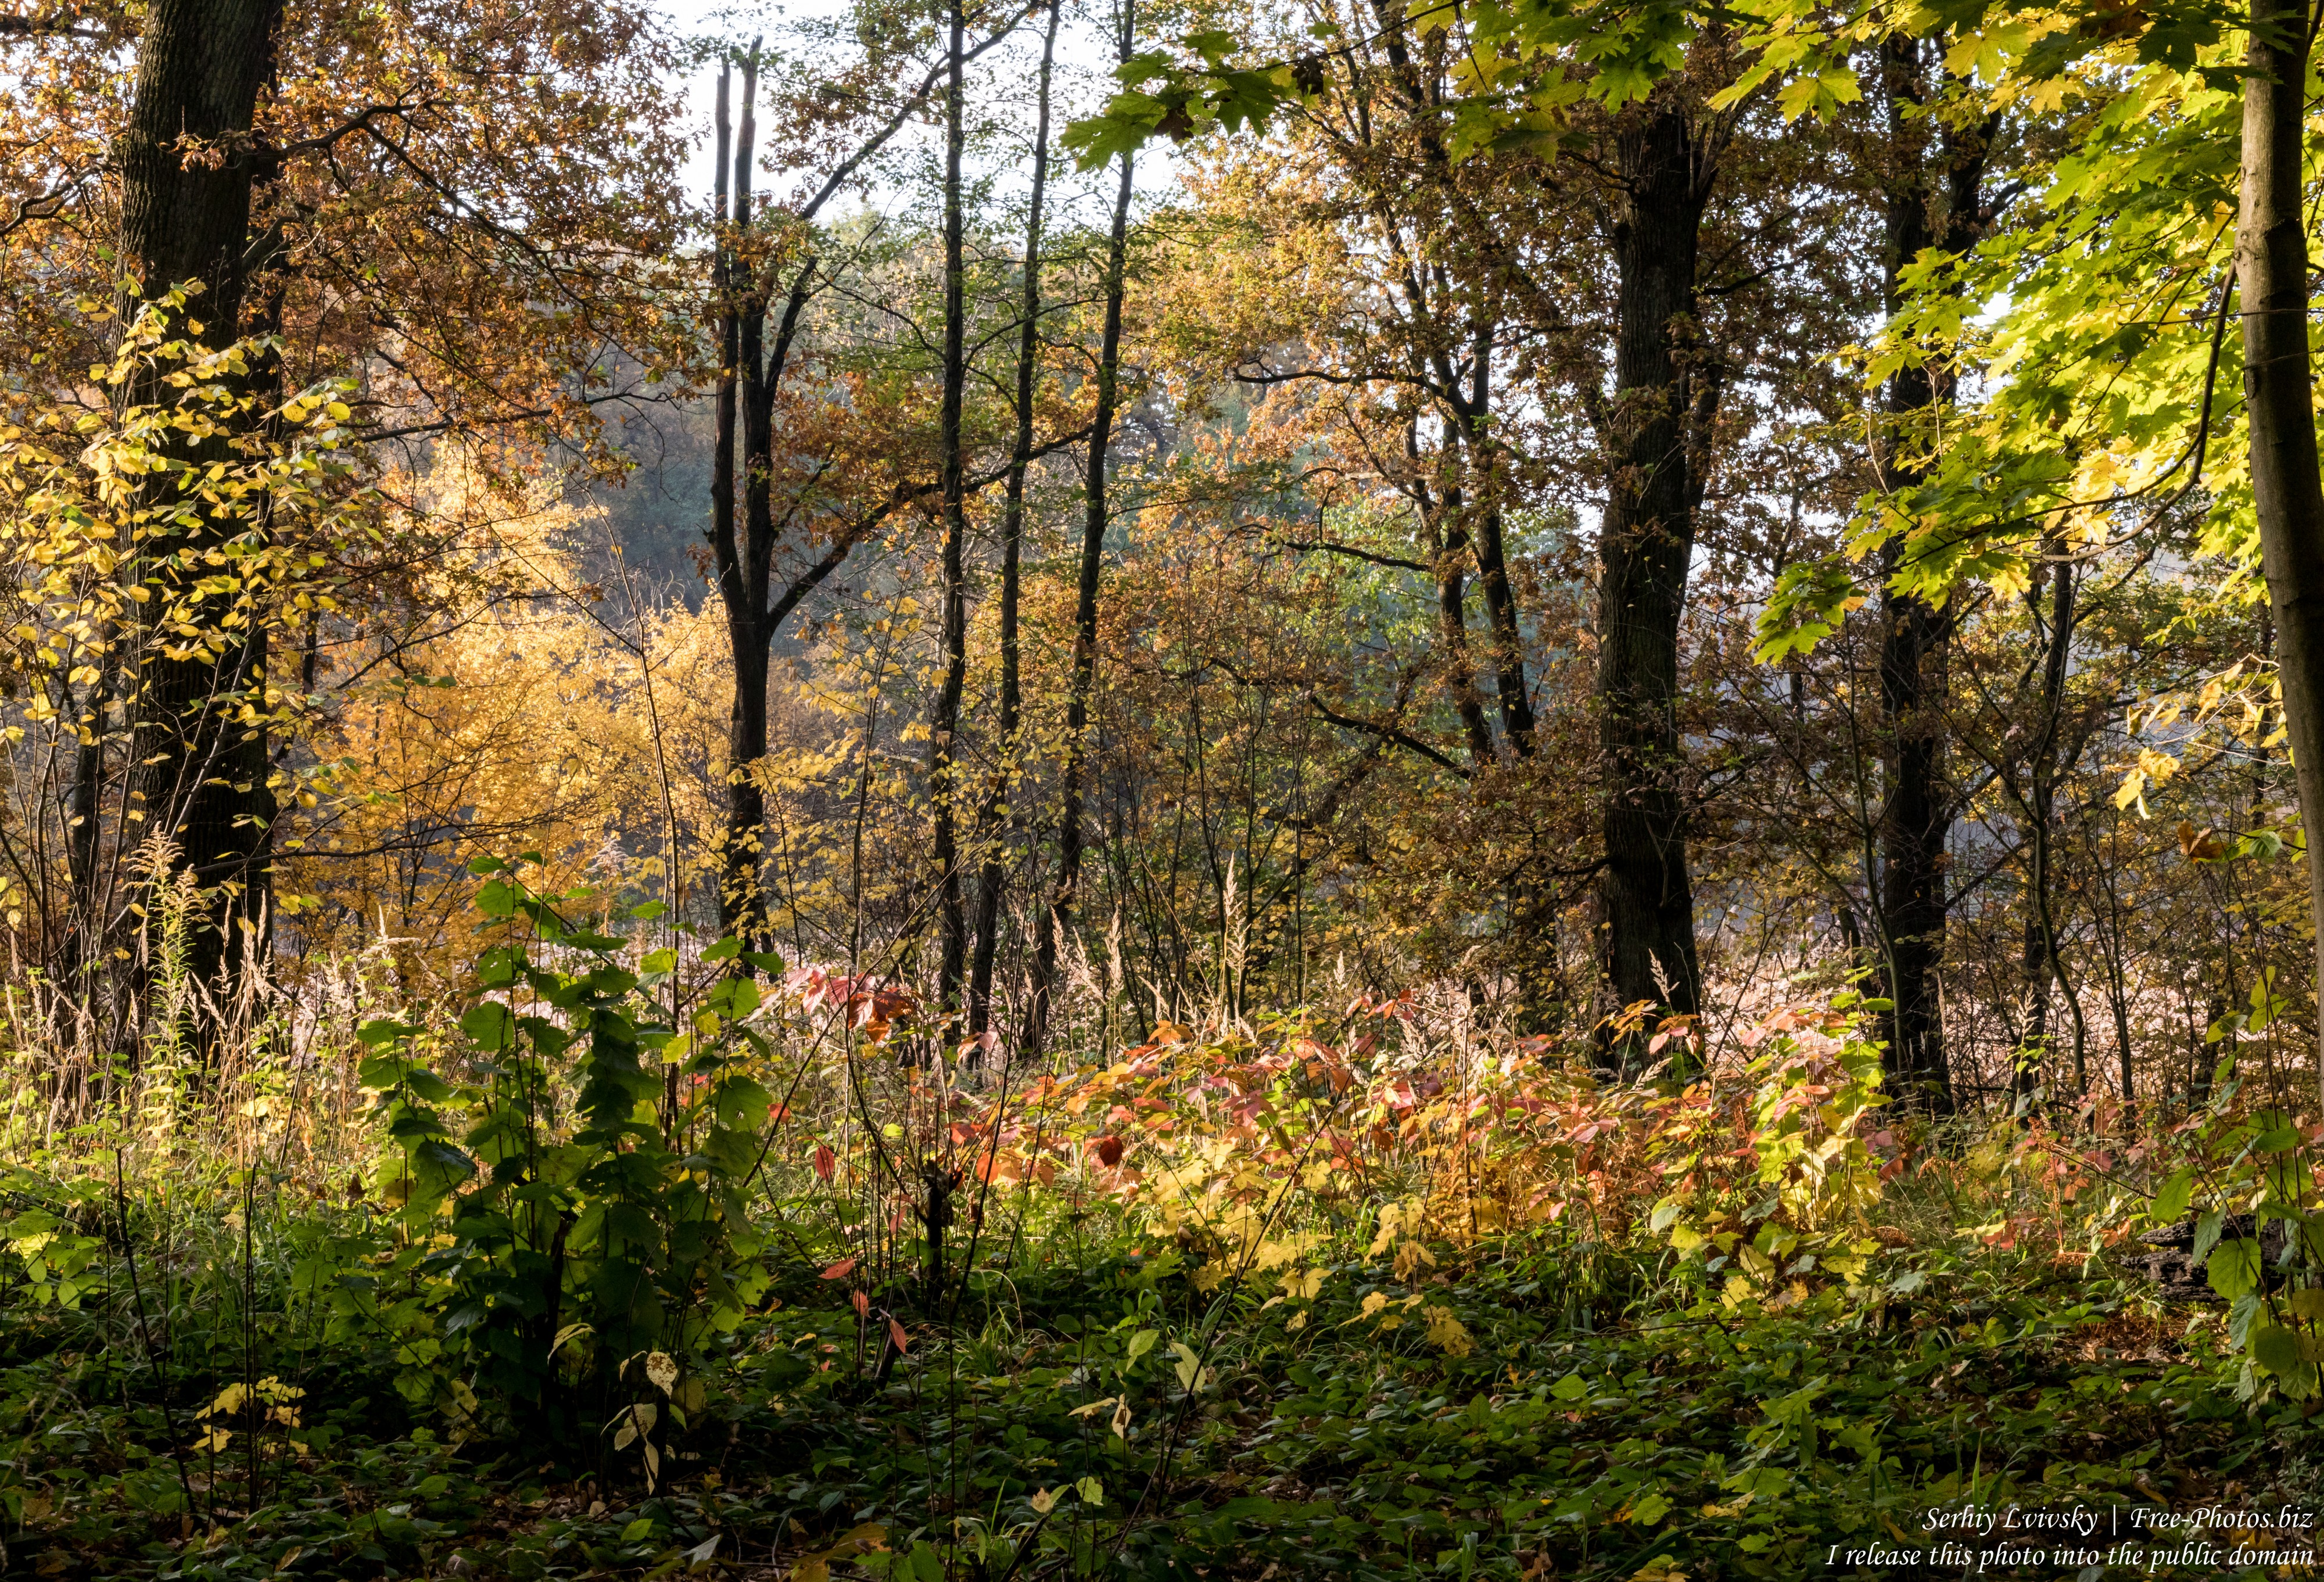 nature in Lviv region of Ukraine photographed in October 2019 by Serhiy Lvivsky, picture 1